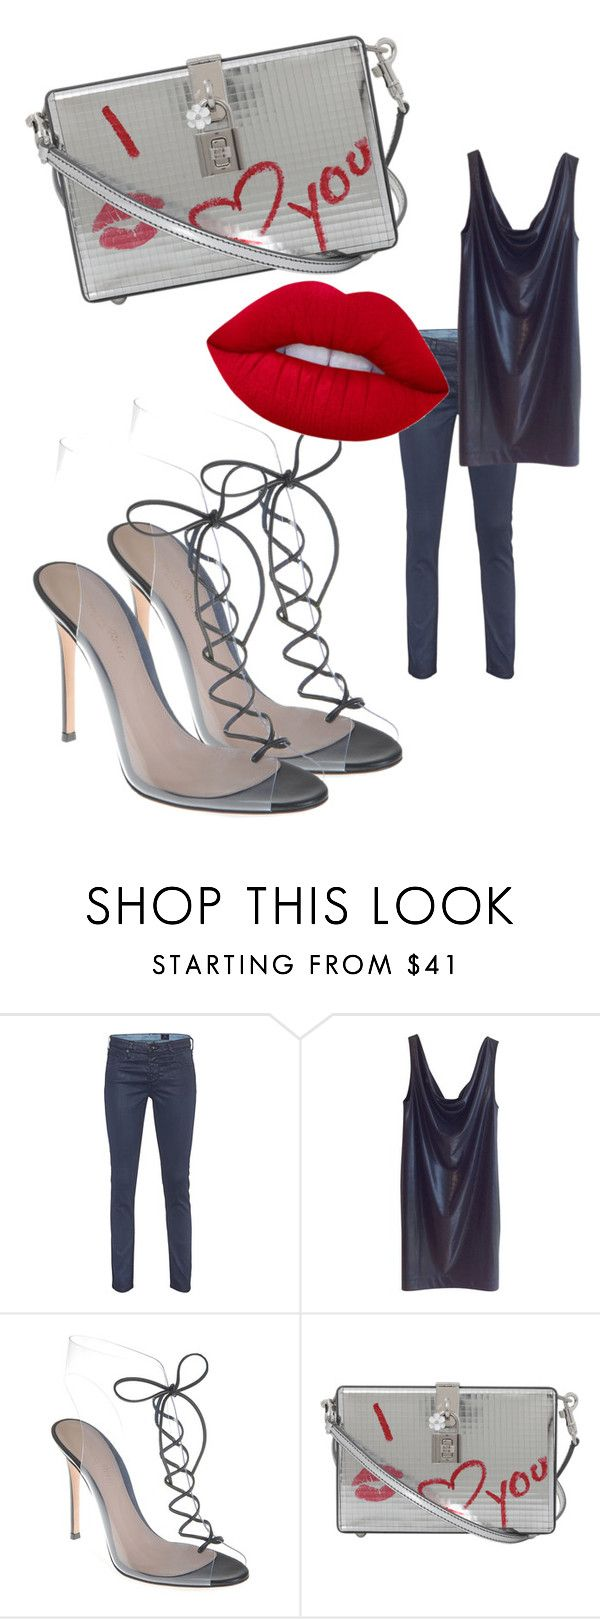 """""""Street Style"""" by viktoria-kot ❤ liked on Polyvore featuring AG Adriano Goldschmied, COS, Gianvito Rossi, Dolce&Gabbana and Lime Crime"""